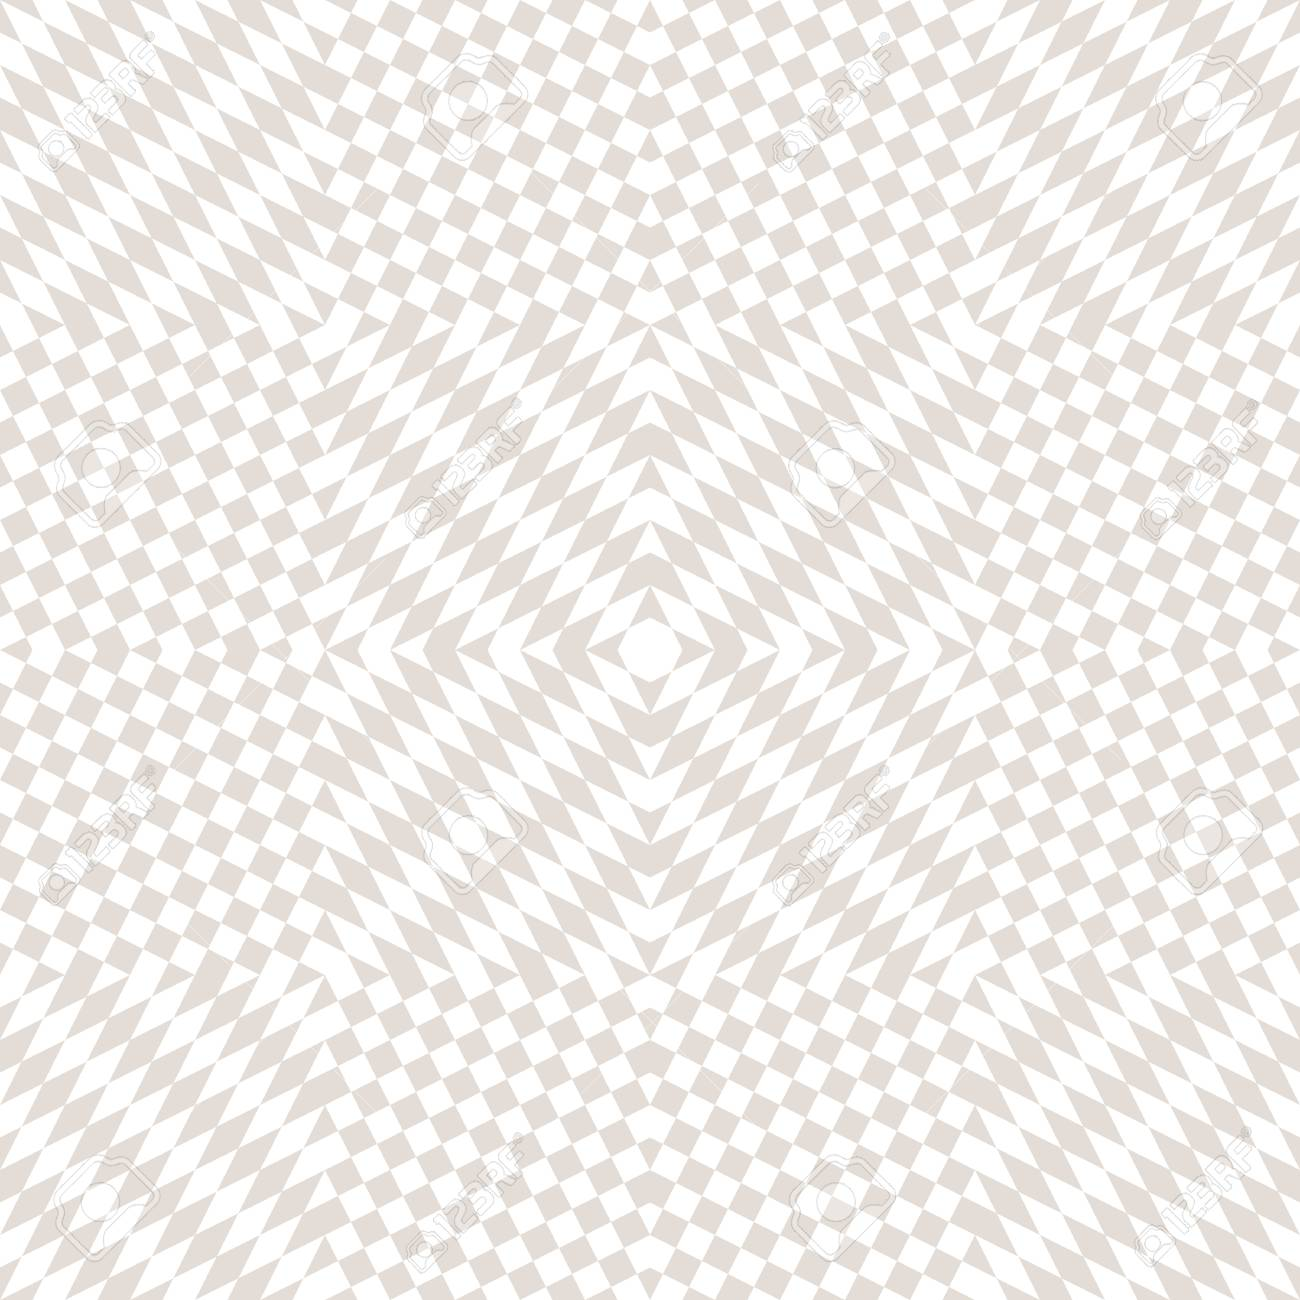 Subtle vector checkered seamless pattern  White and beige staggered